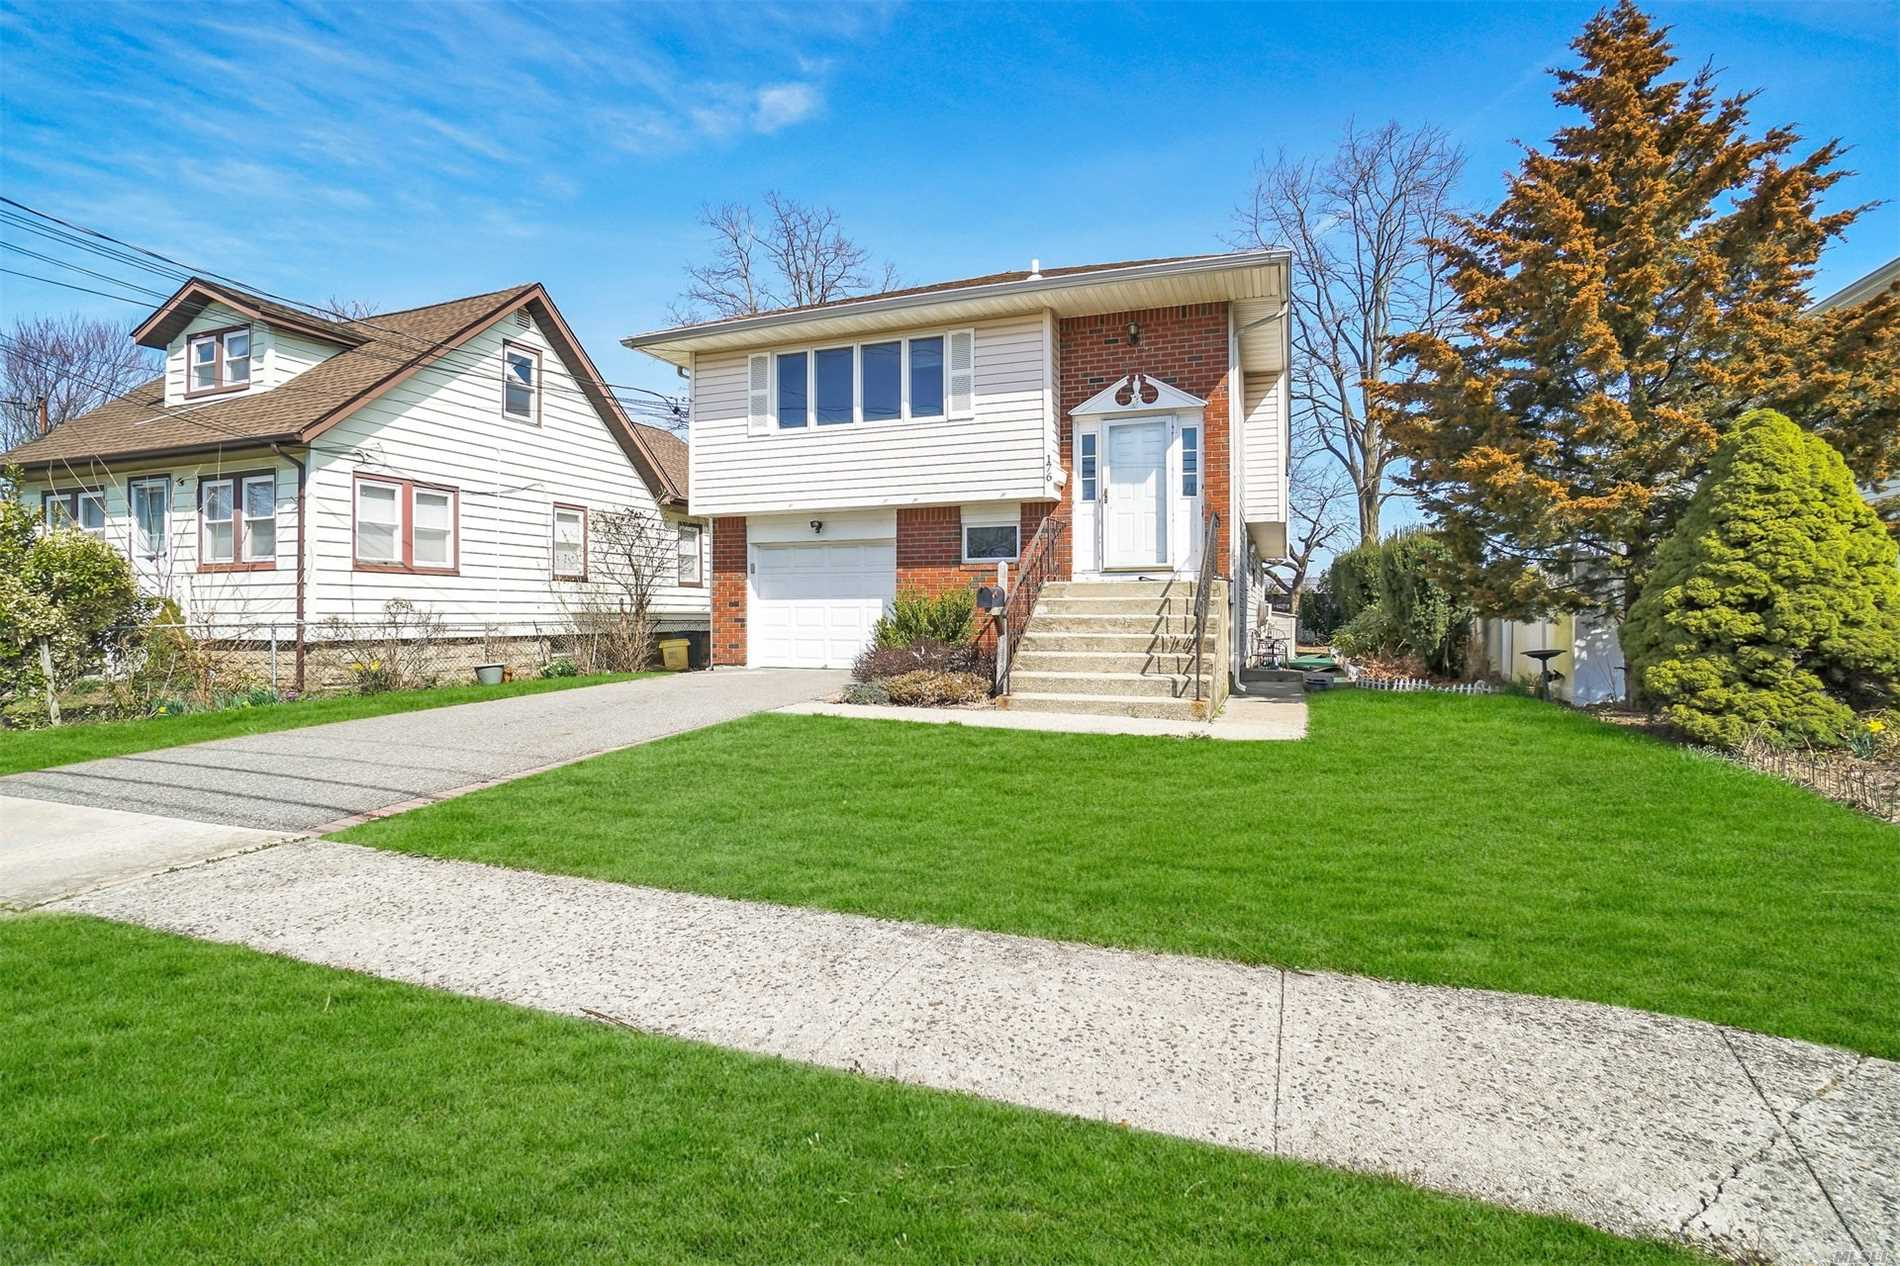 You must see this immaculate hi-ranch in prime Bethpage location with freshly painted and carpeted second level, updated kitchen and bath, gas cooking and heating, newer roof and siding, and close to main roads, shopping, and restaurants. Taxes are being grieved. Bethpage Schools.